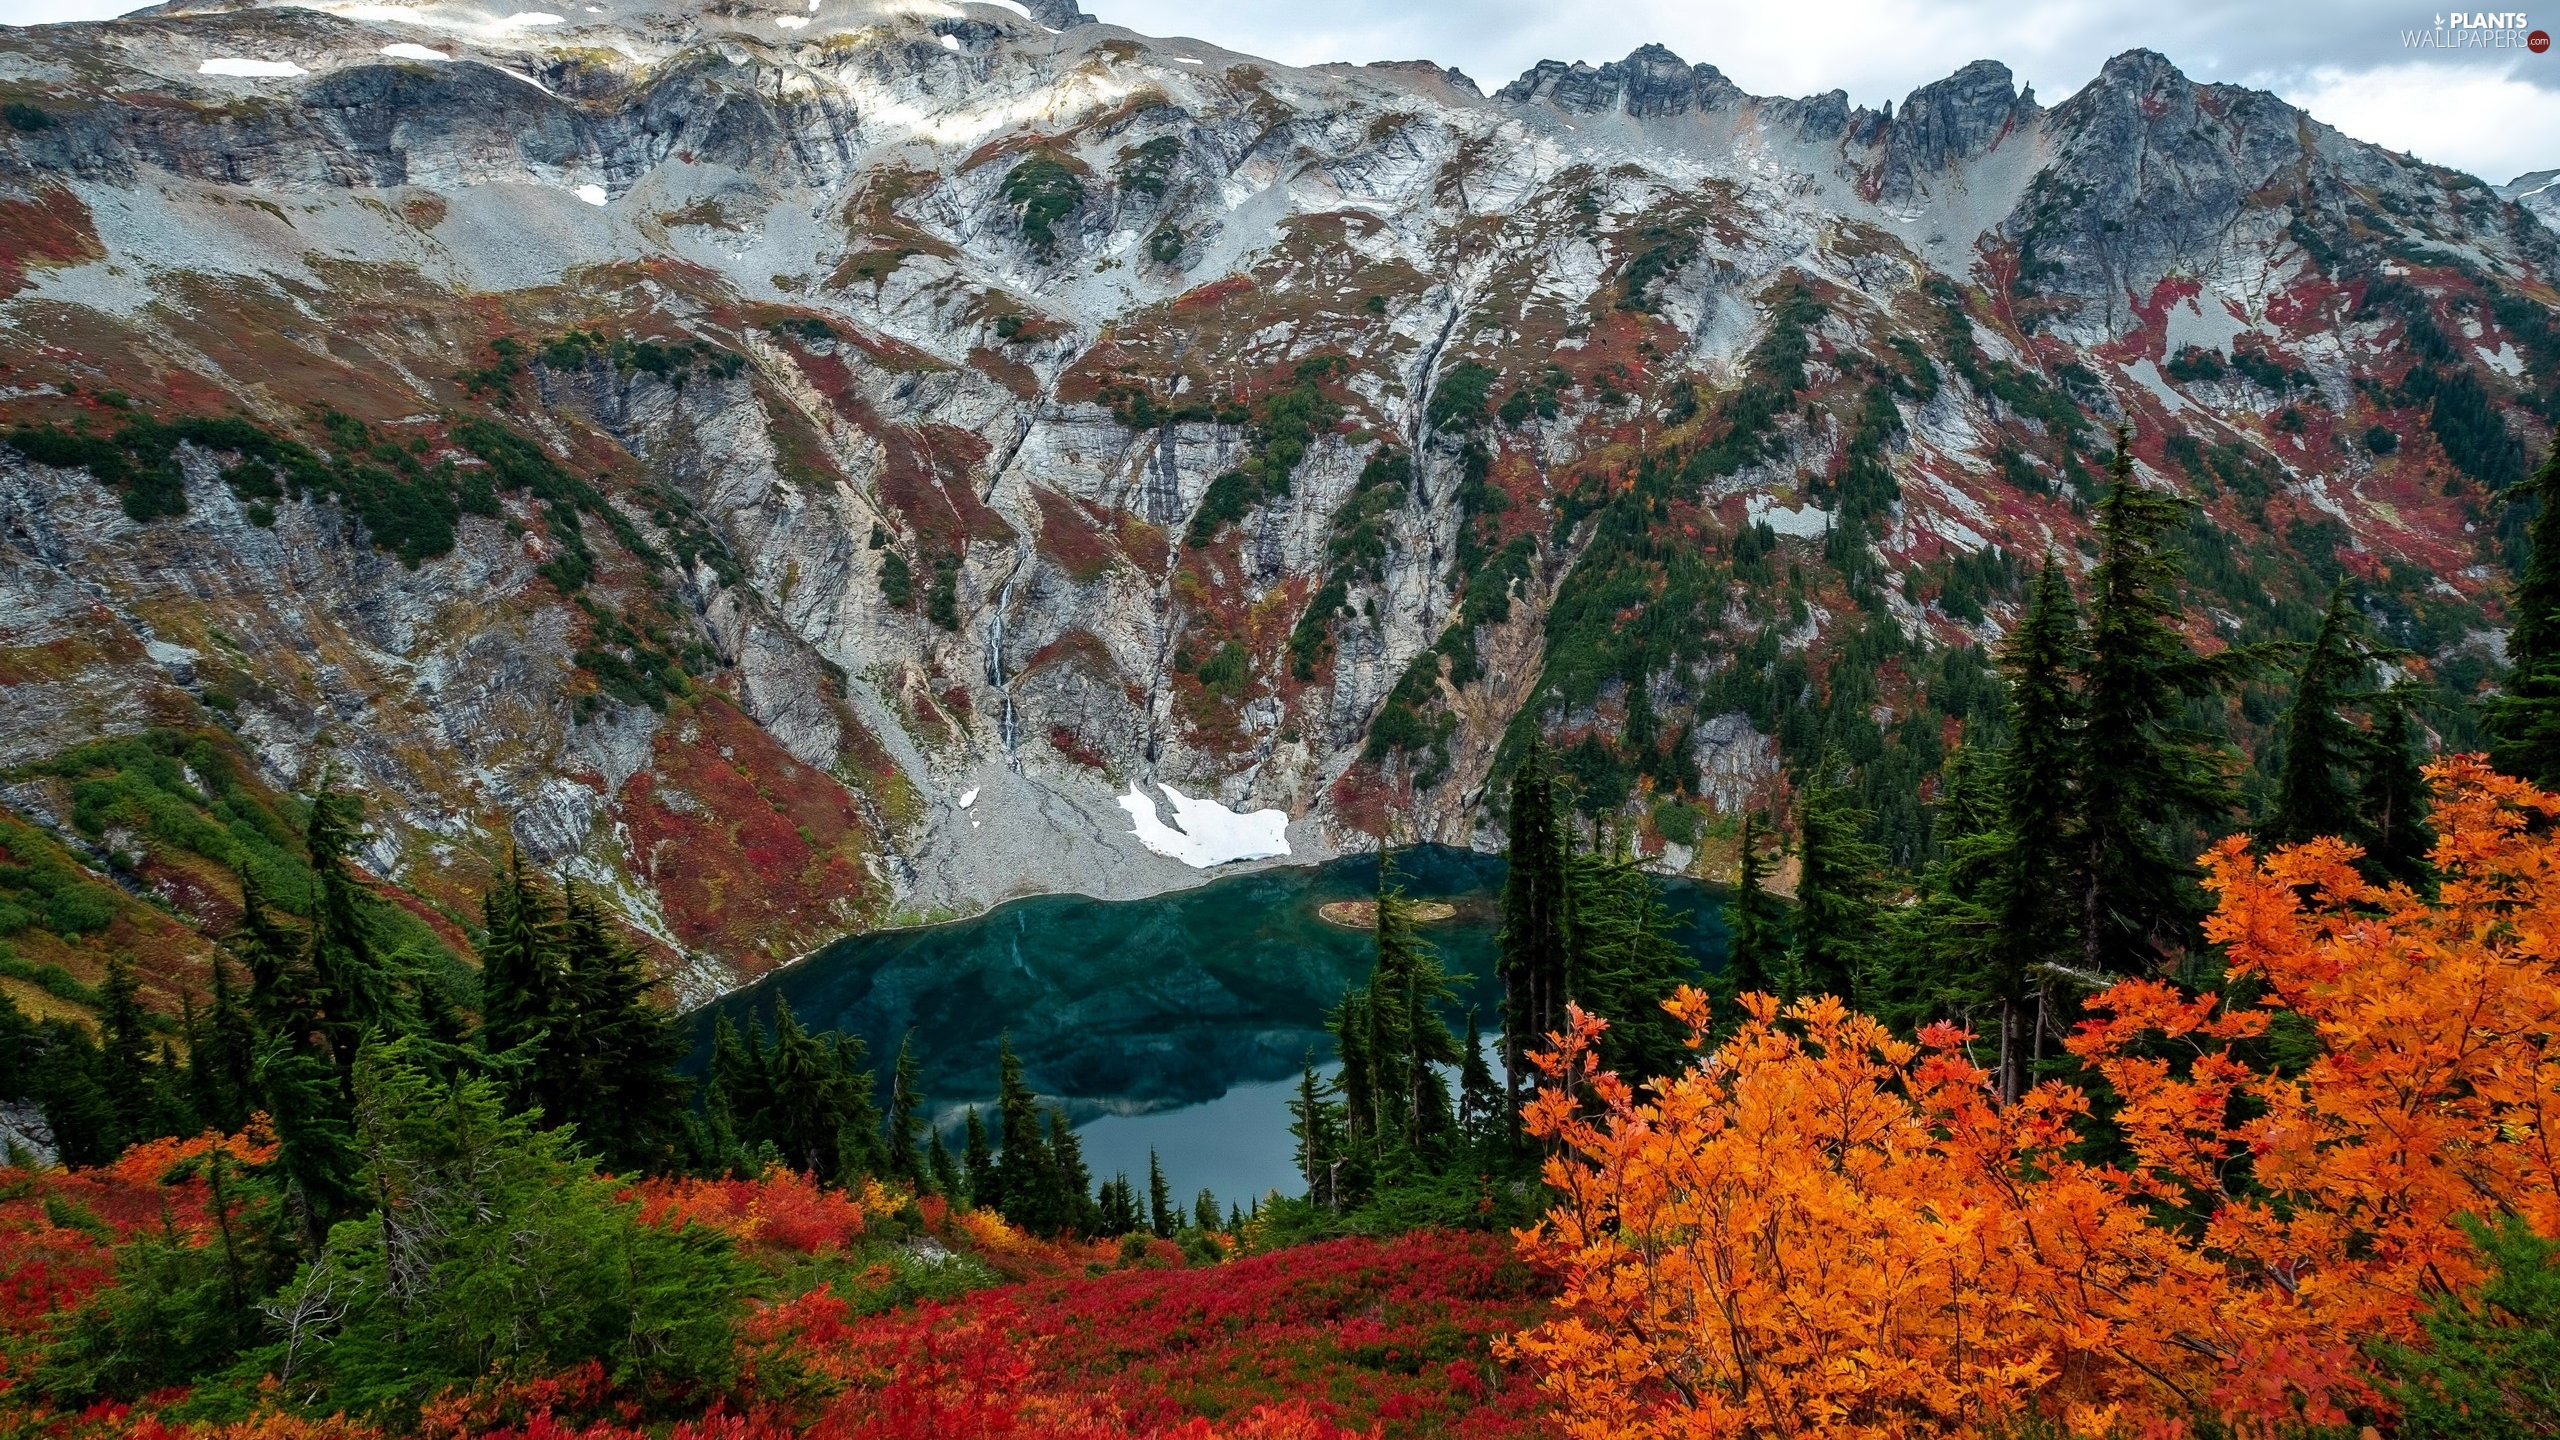 trees, viewes, The United States, autumn, Washington State, lake, Mountains, North Cascades National Park